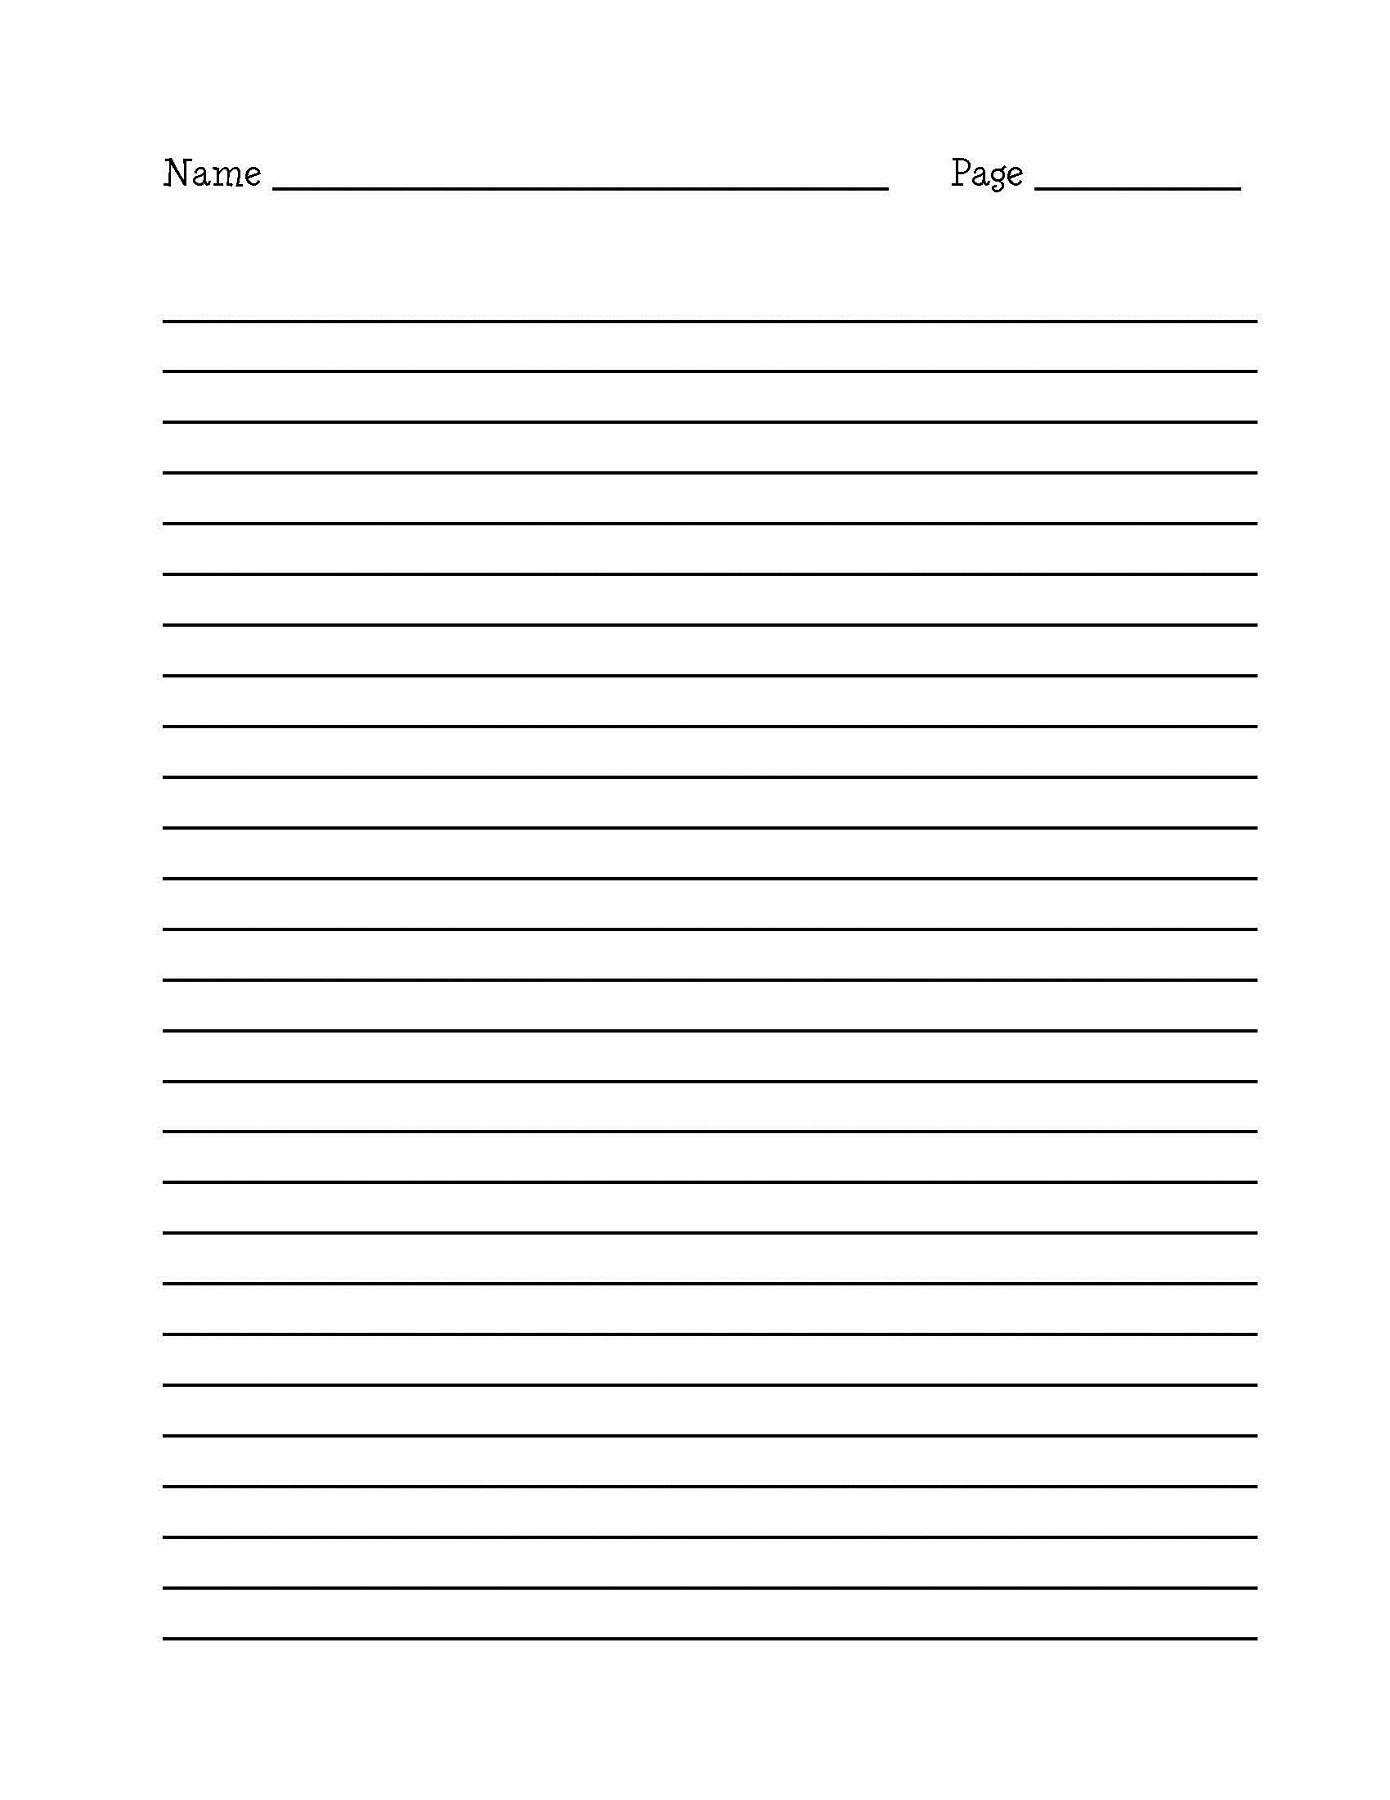 Free Printable Lined Handwriting Paper – Ezzy - Free Printable Lined Handwriting Paper